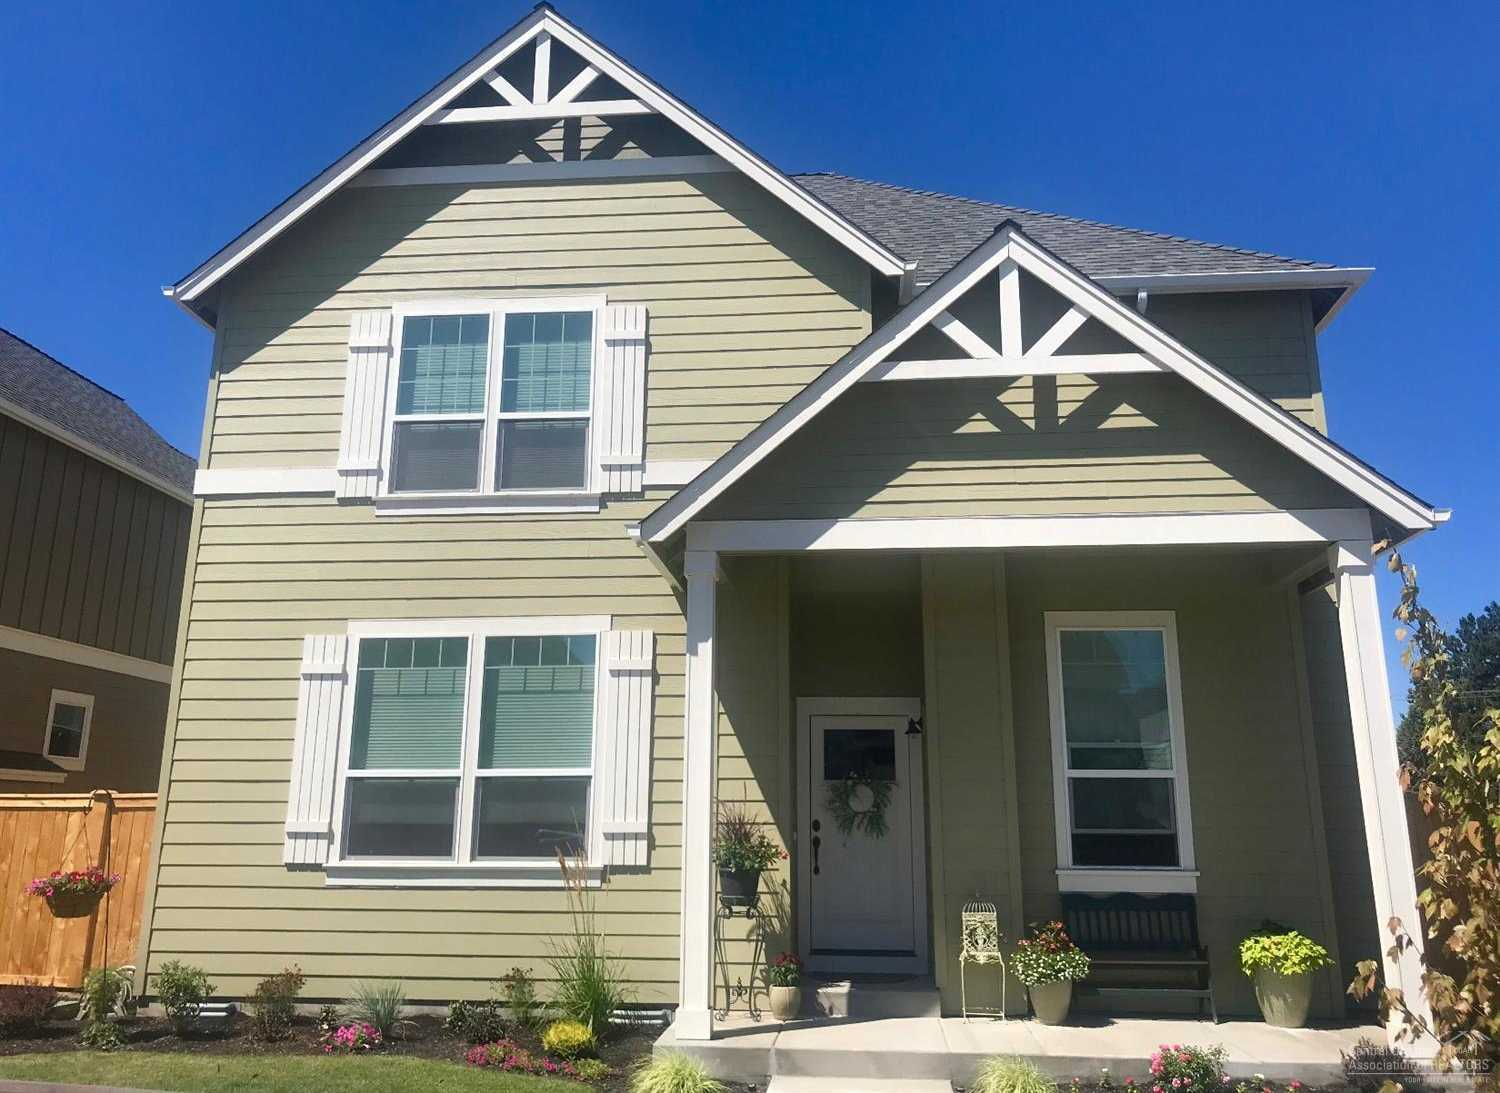 $392,300 - 4Br/3Ba -  for Sale in Bend